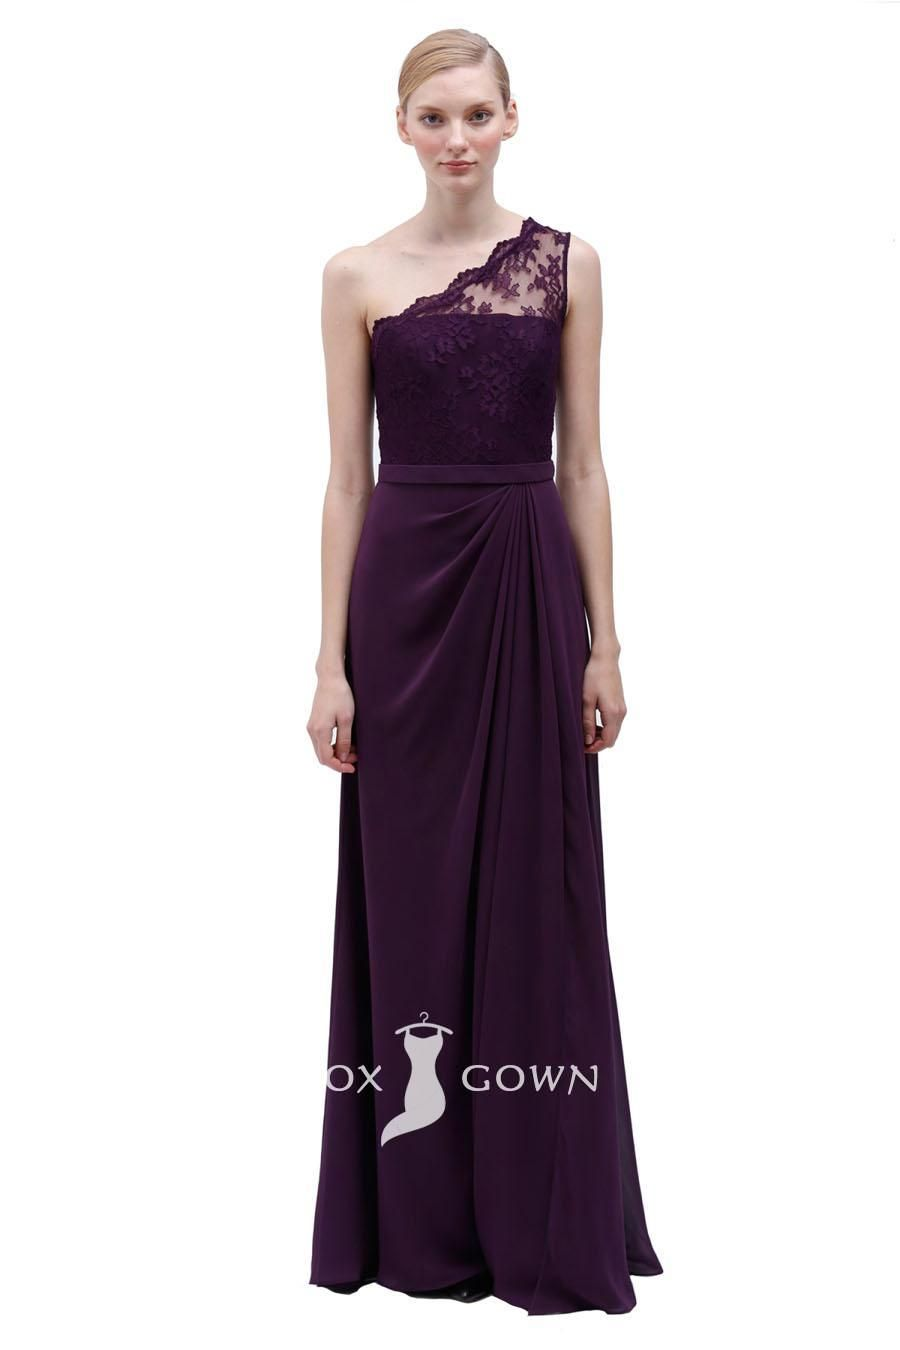 Plum one shoulder lace and chiffon floor length bridesmaid dress plum one shoulder lace and chiffon floor length bridesmaid dress ombrellifo Gallery